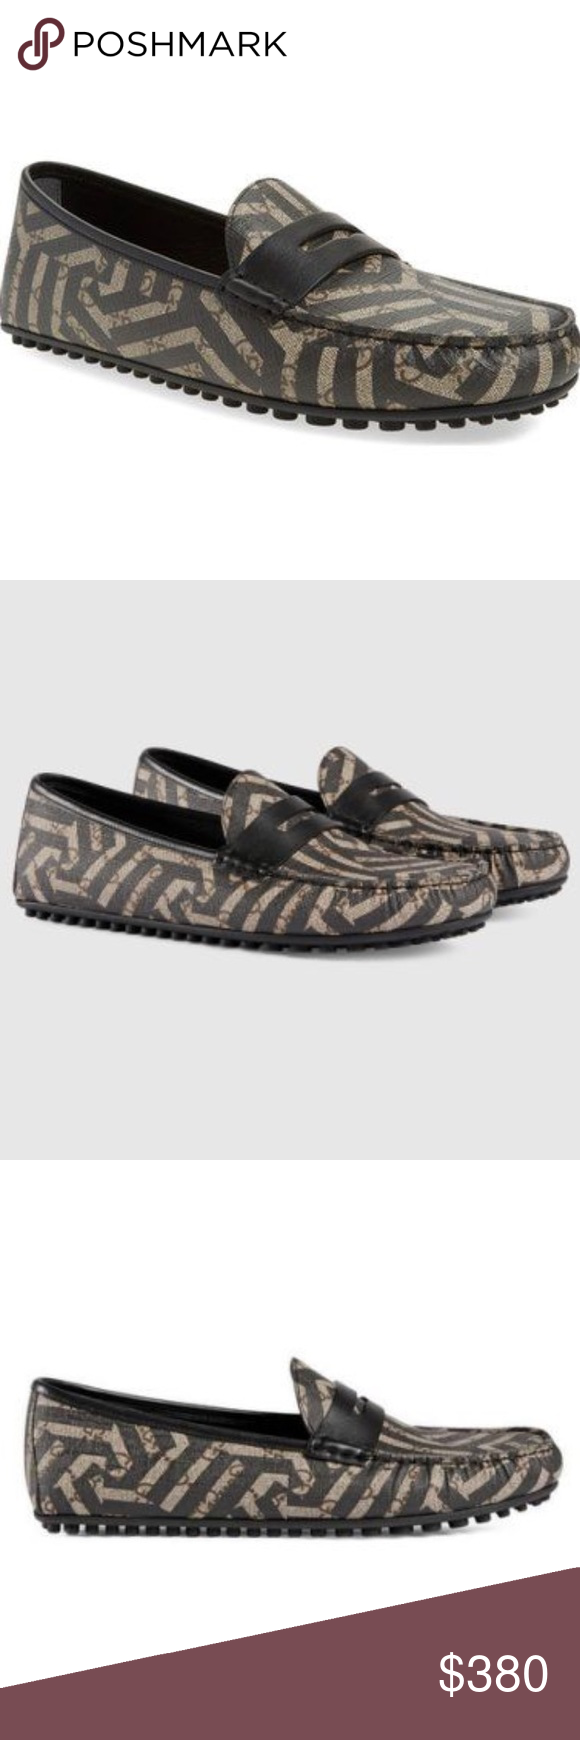 bc4331654e1a New Gucci Caleido Driving Loafer canvas leather ❤ New Gucci Driving shoe in  signature GG Supreme with graphic Caleido print. Size - UK SIZE WILL BE  STAMP ...